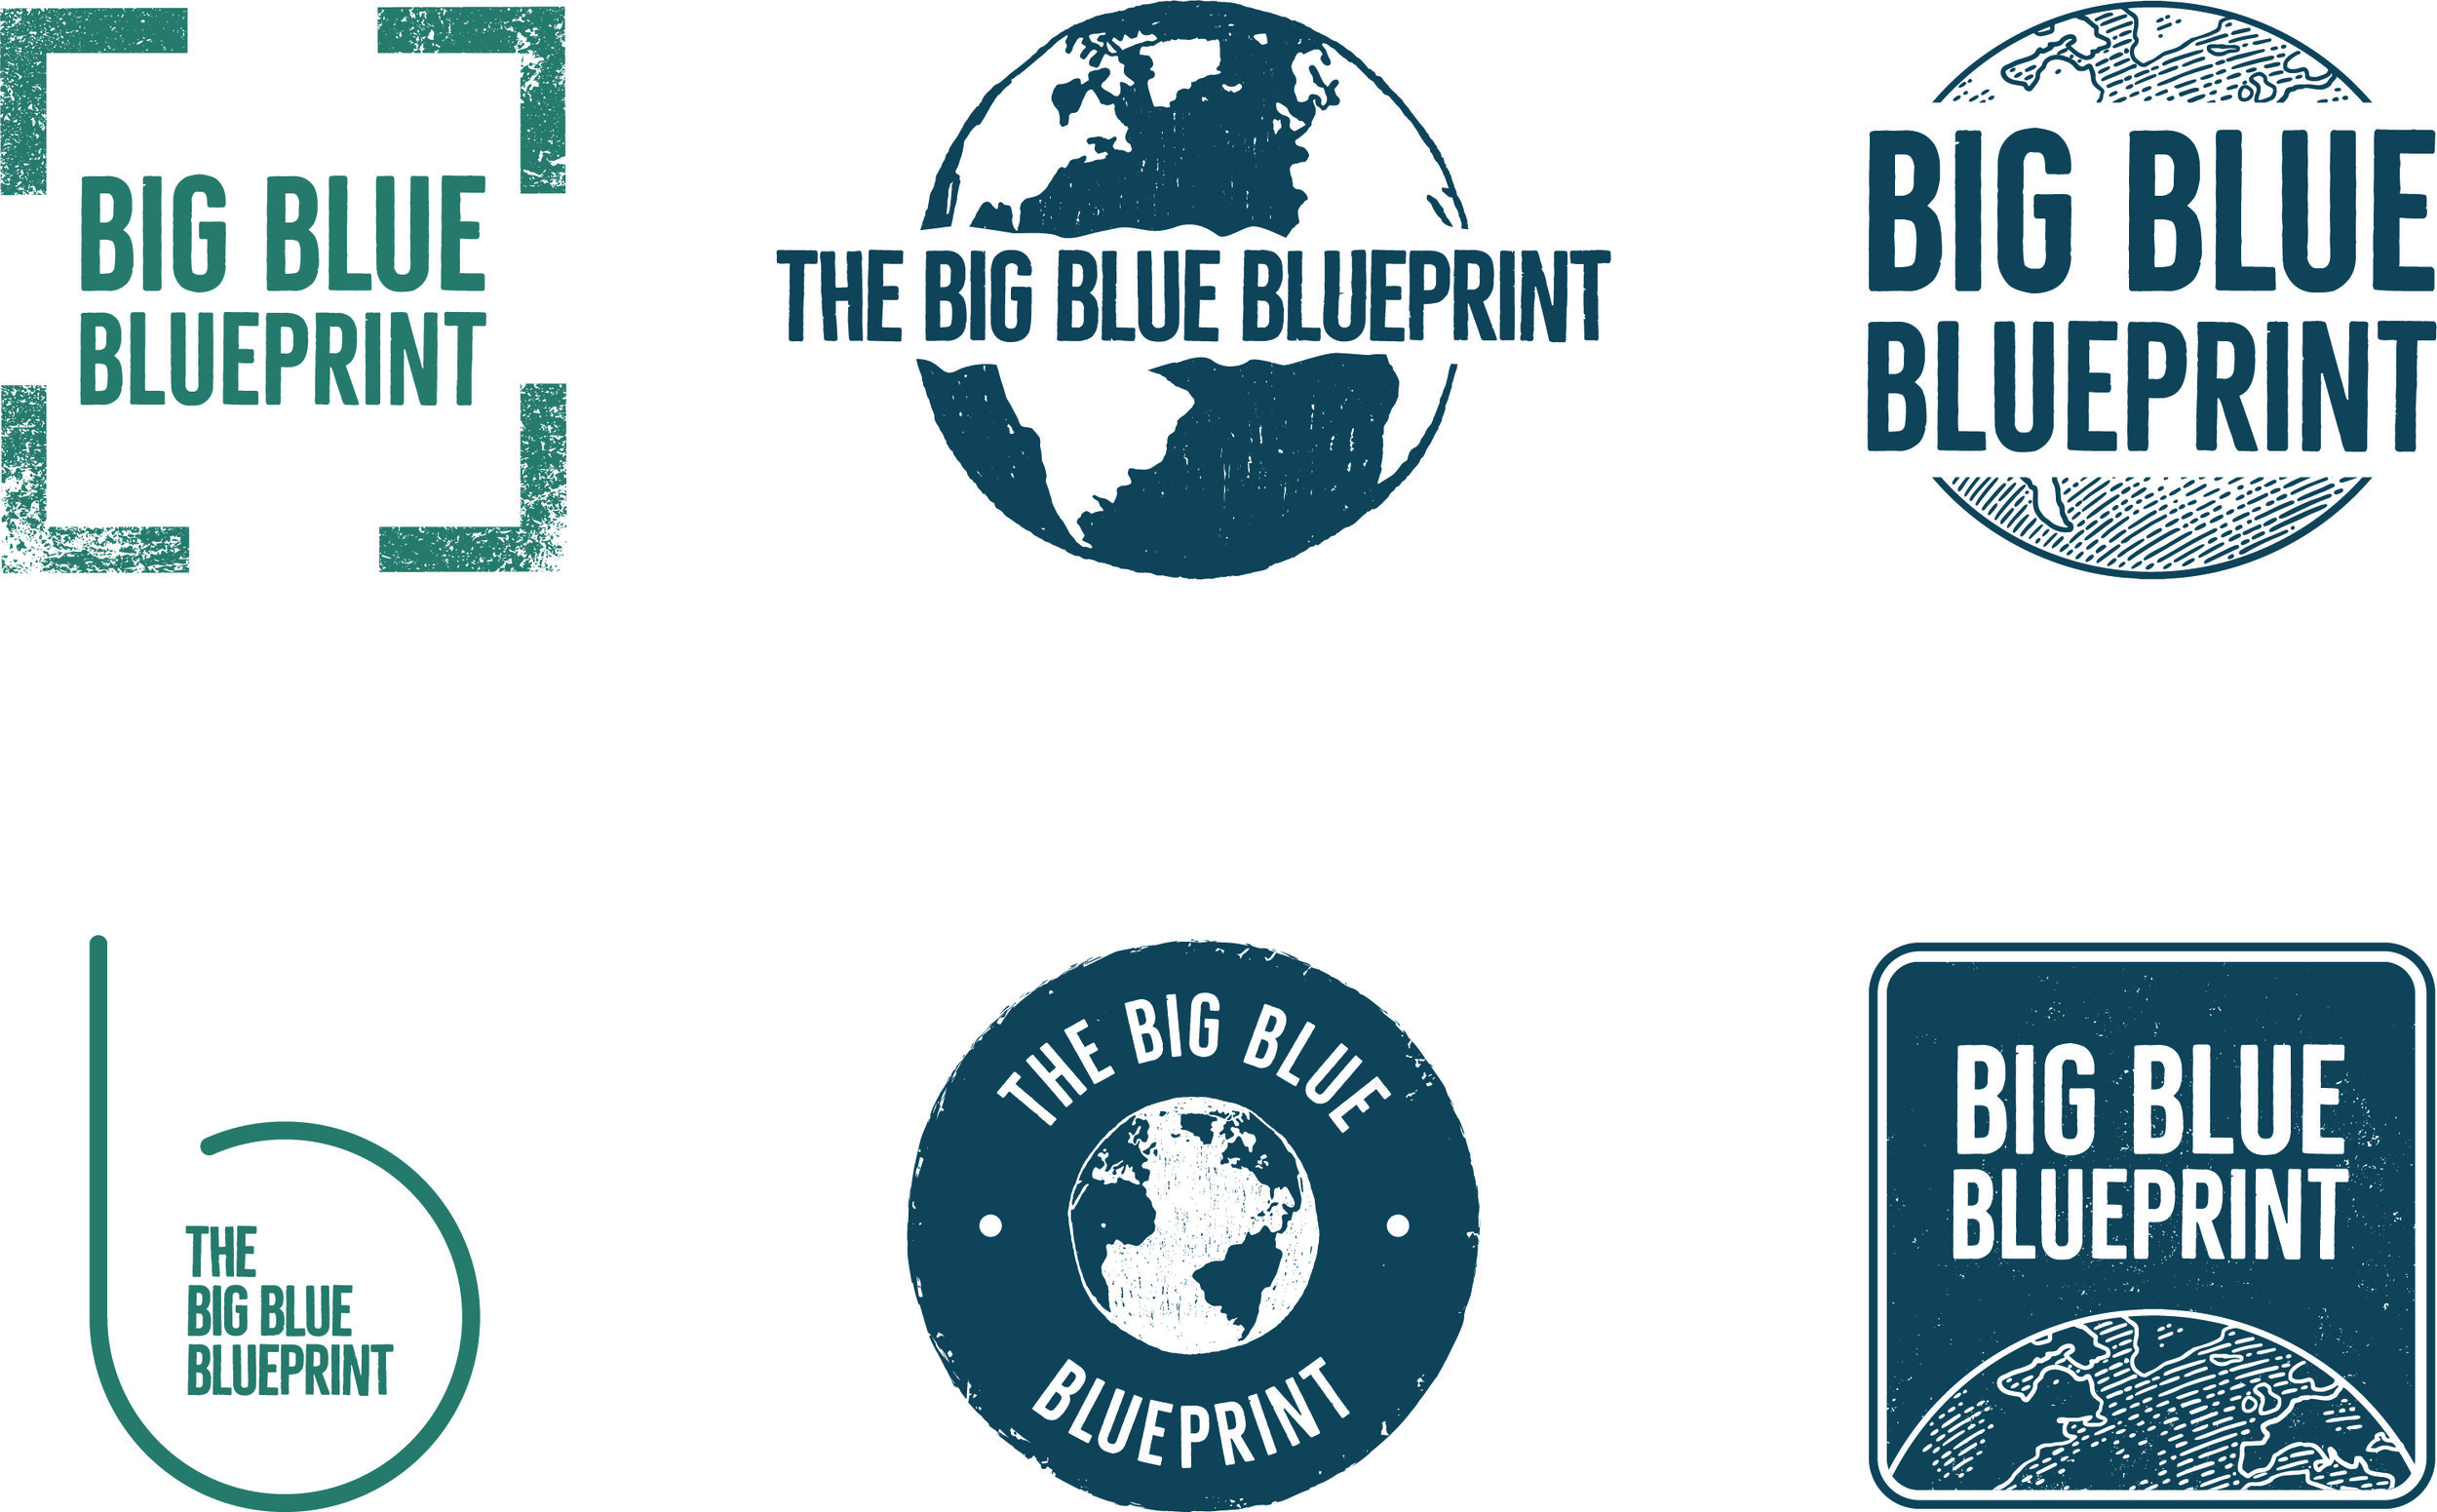 Some of the logos we created for The Big Blue Blueprint